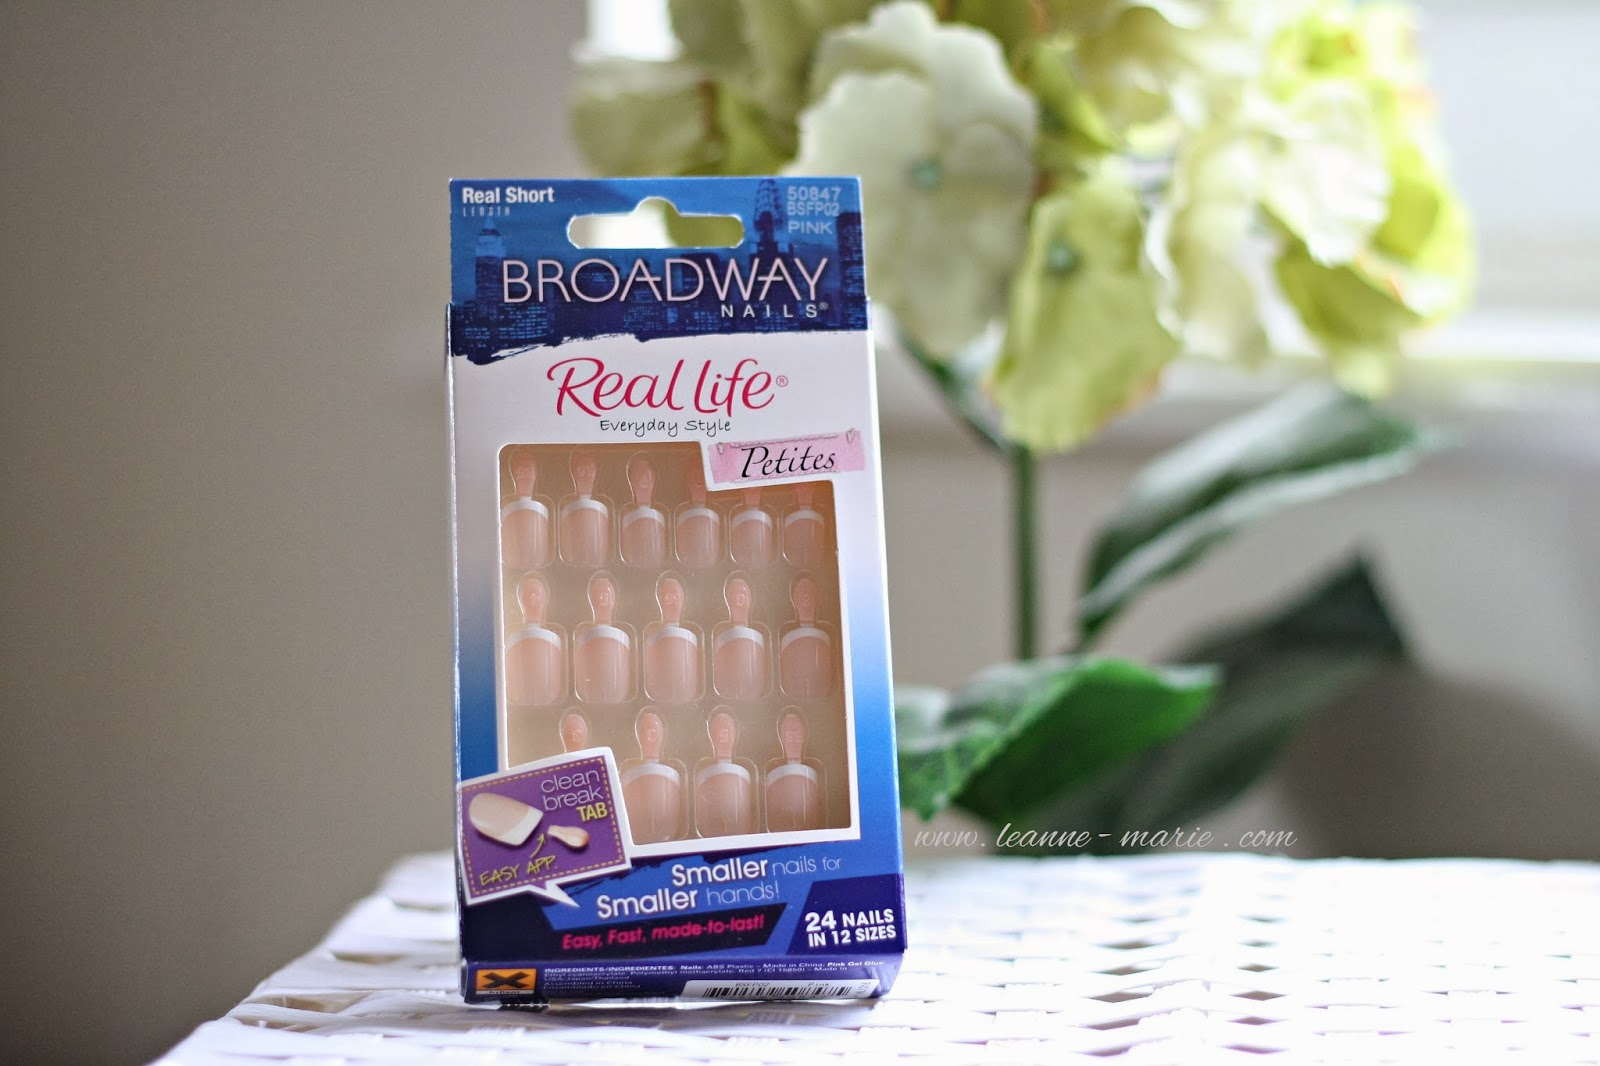 broadway-nails-real-life-petite-stick-on-beauty-blog-review